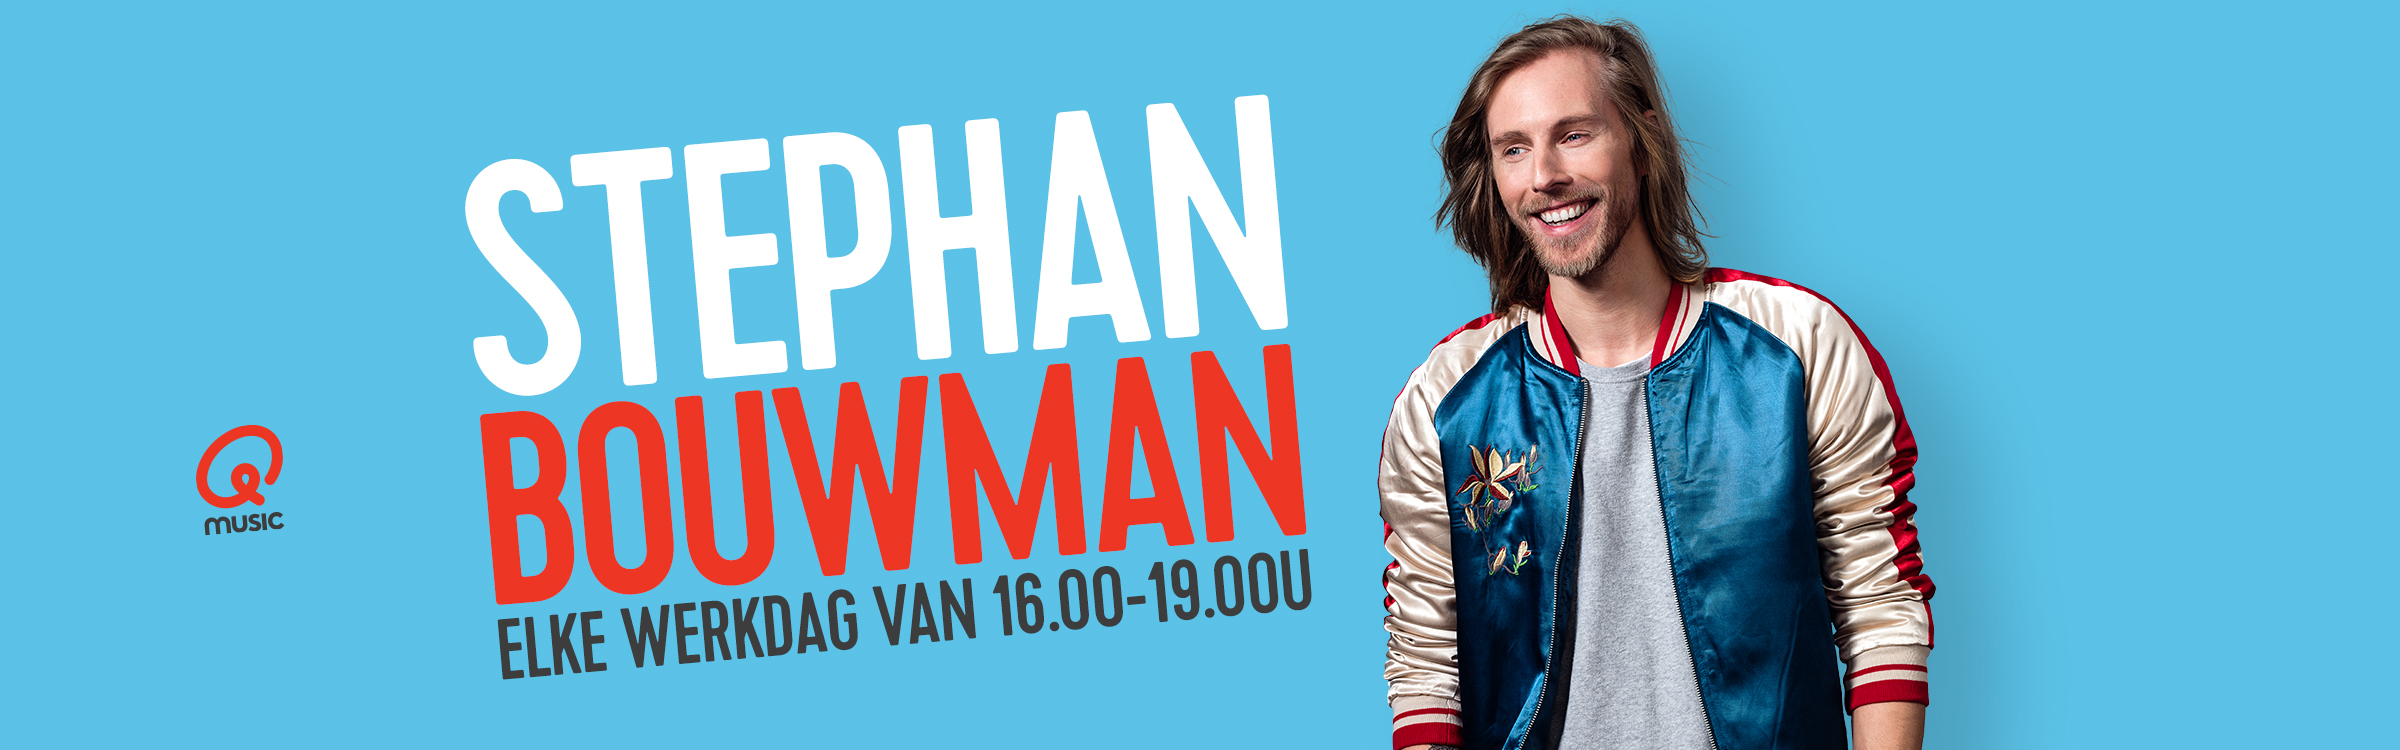 Qmusic actionheader stephan